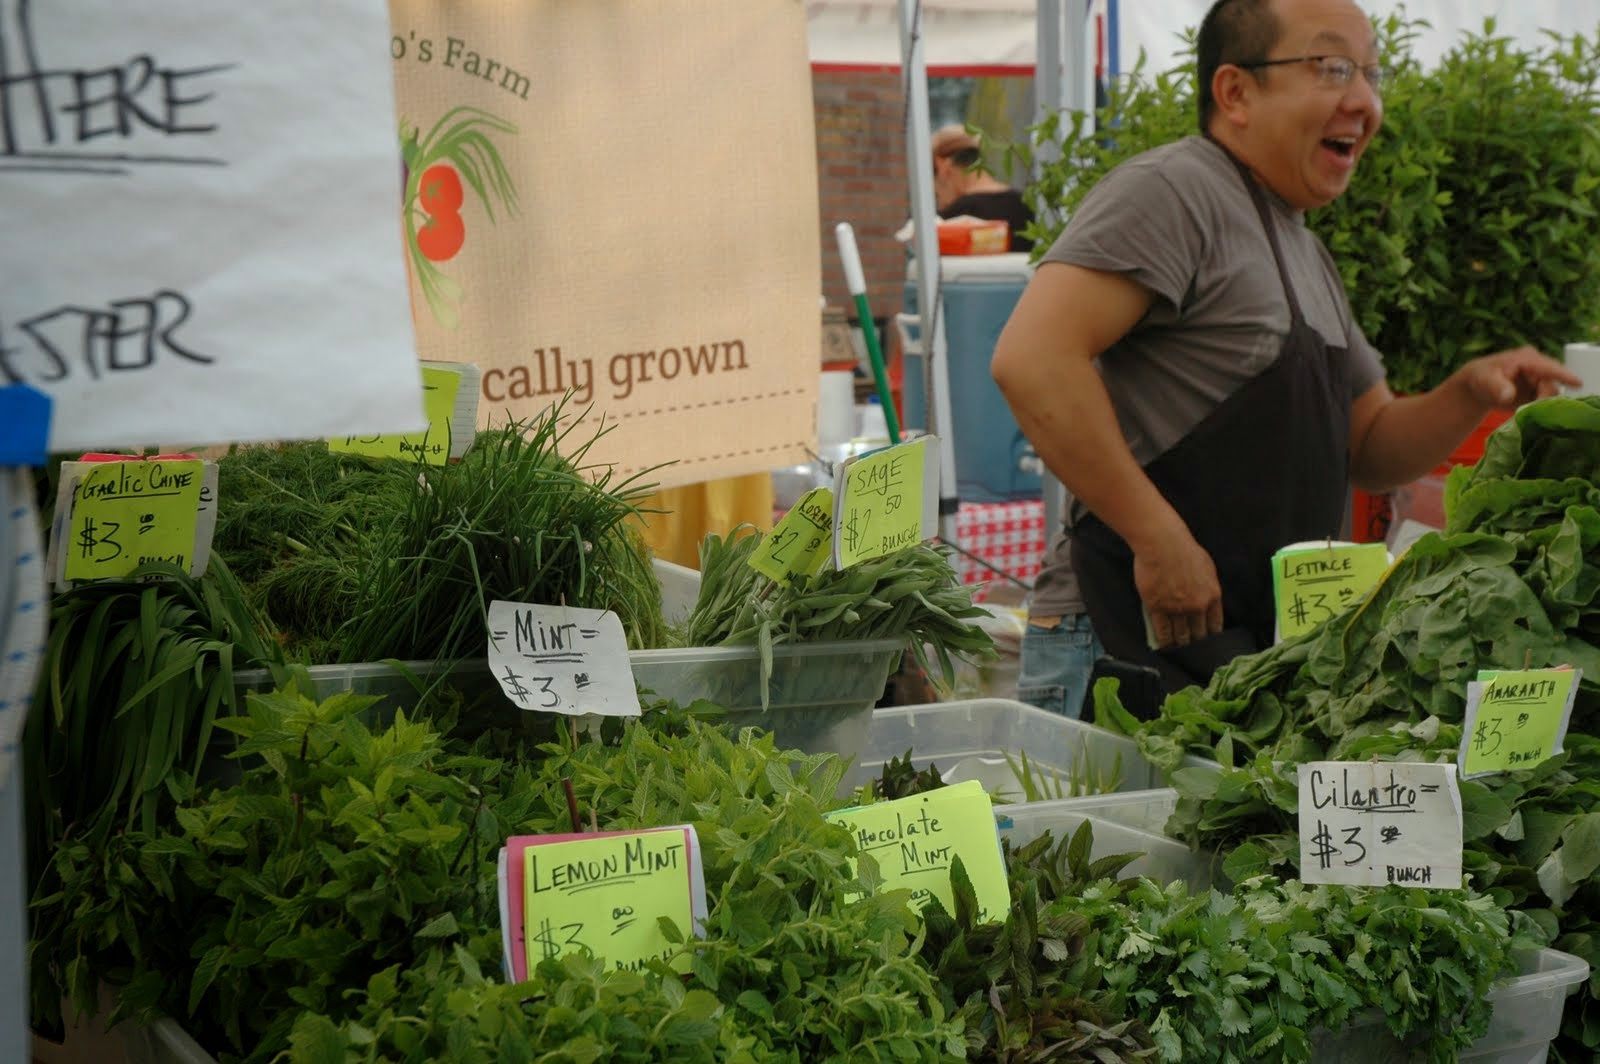 Hundreds of different leafy vegetables exist in the world. The Ballard Farmers Market sells approximately all of them.